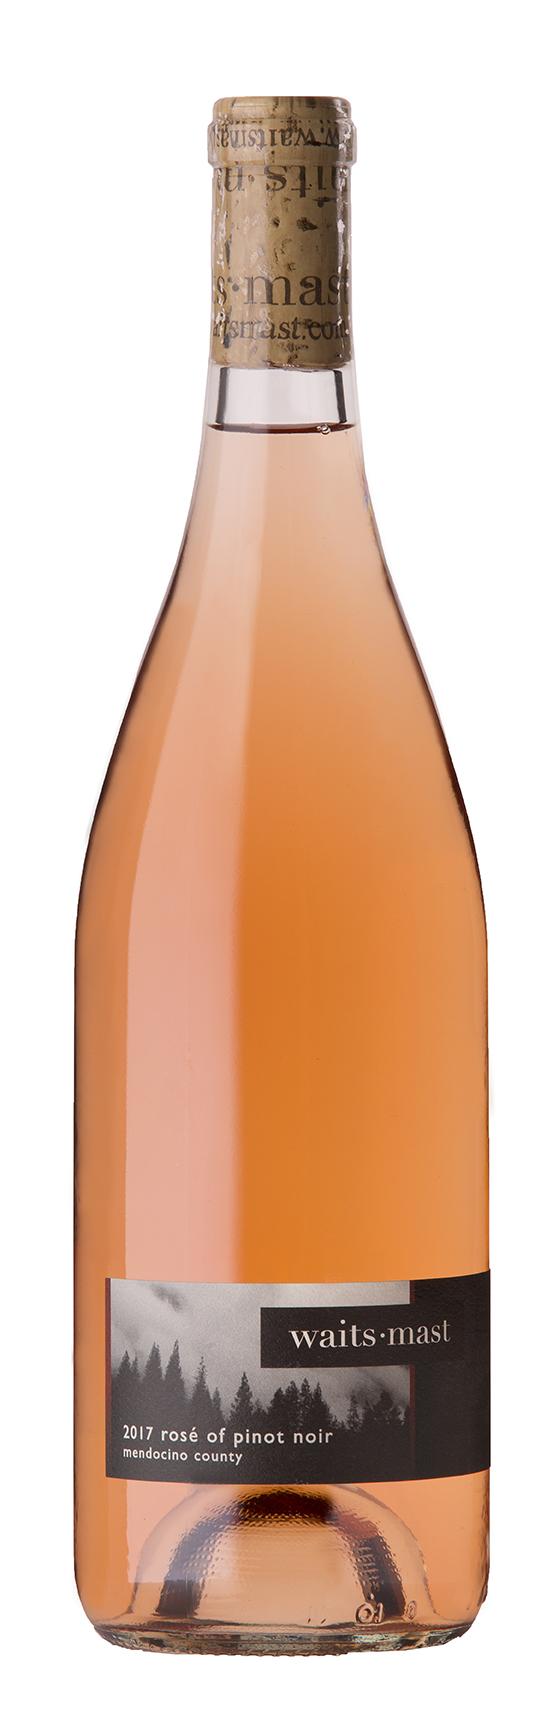 Waits-Mast_Rose of Pinot Noir_Mendocino County 2017.jpg